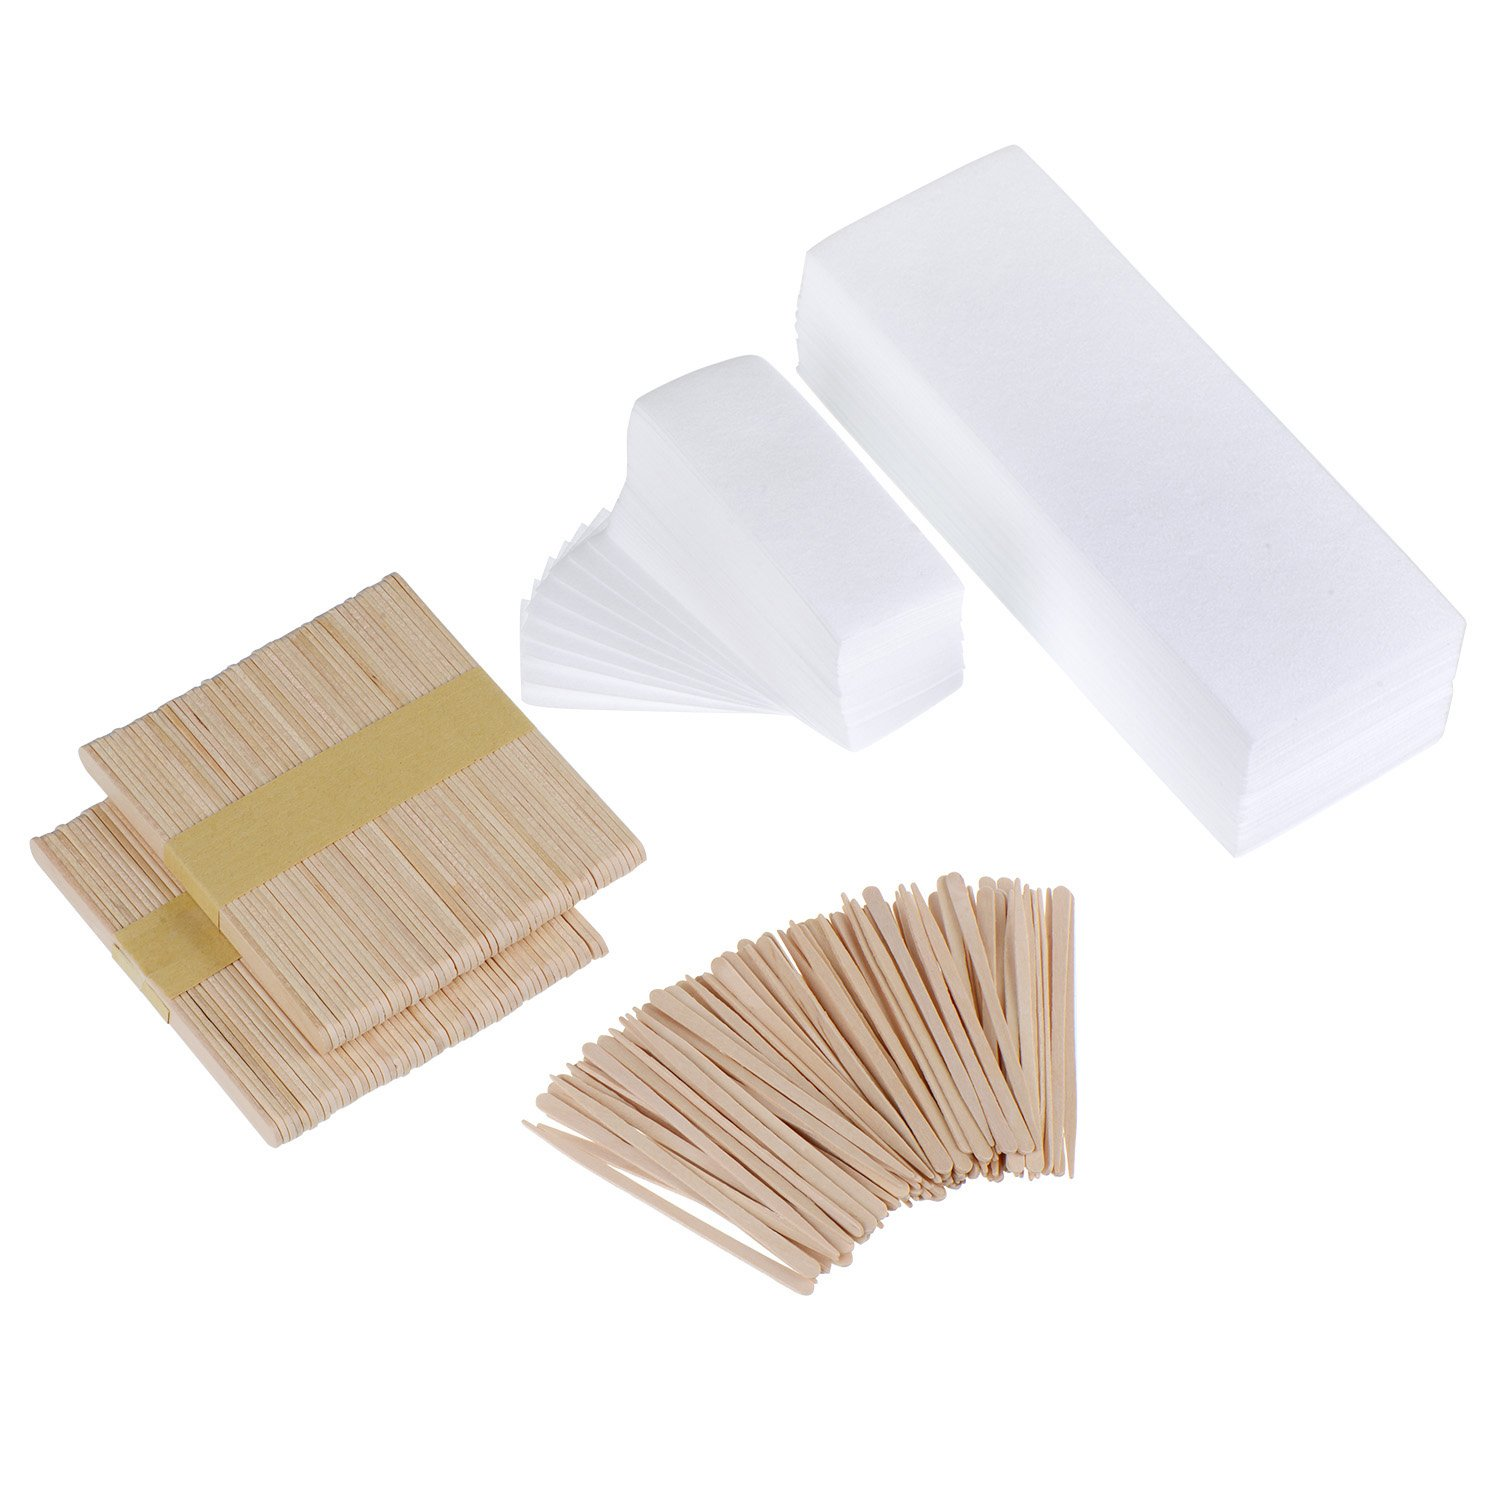 200 Pieces Waxing Strip Non-Woven Wax Strip Hair Removal Wax Strips and 200 Pieces Wax Applicator Sticks Mudder